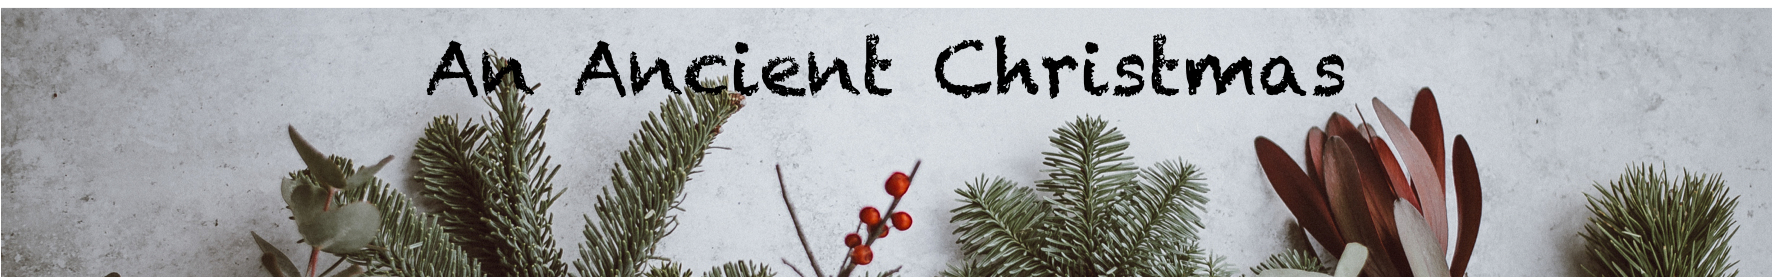 An Ancient Christmas Banner.png